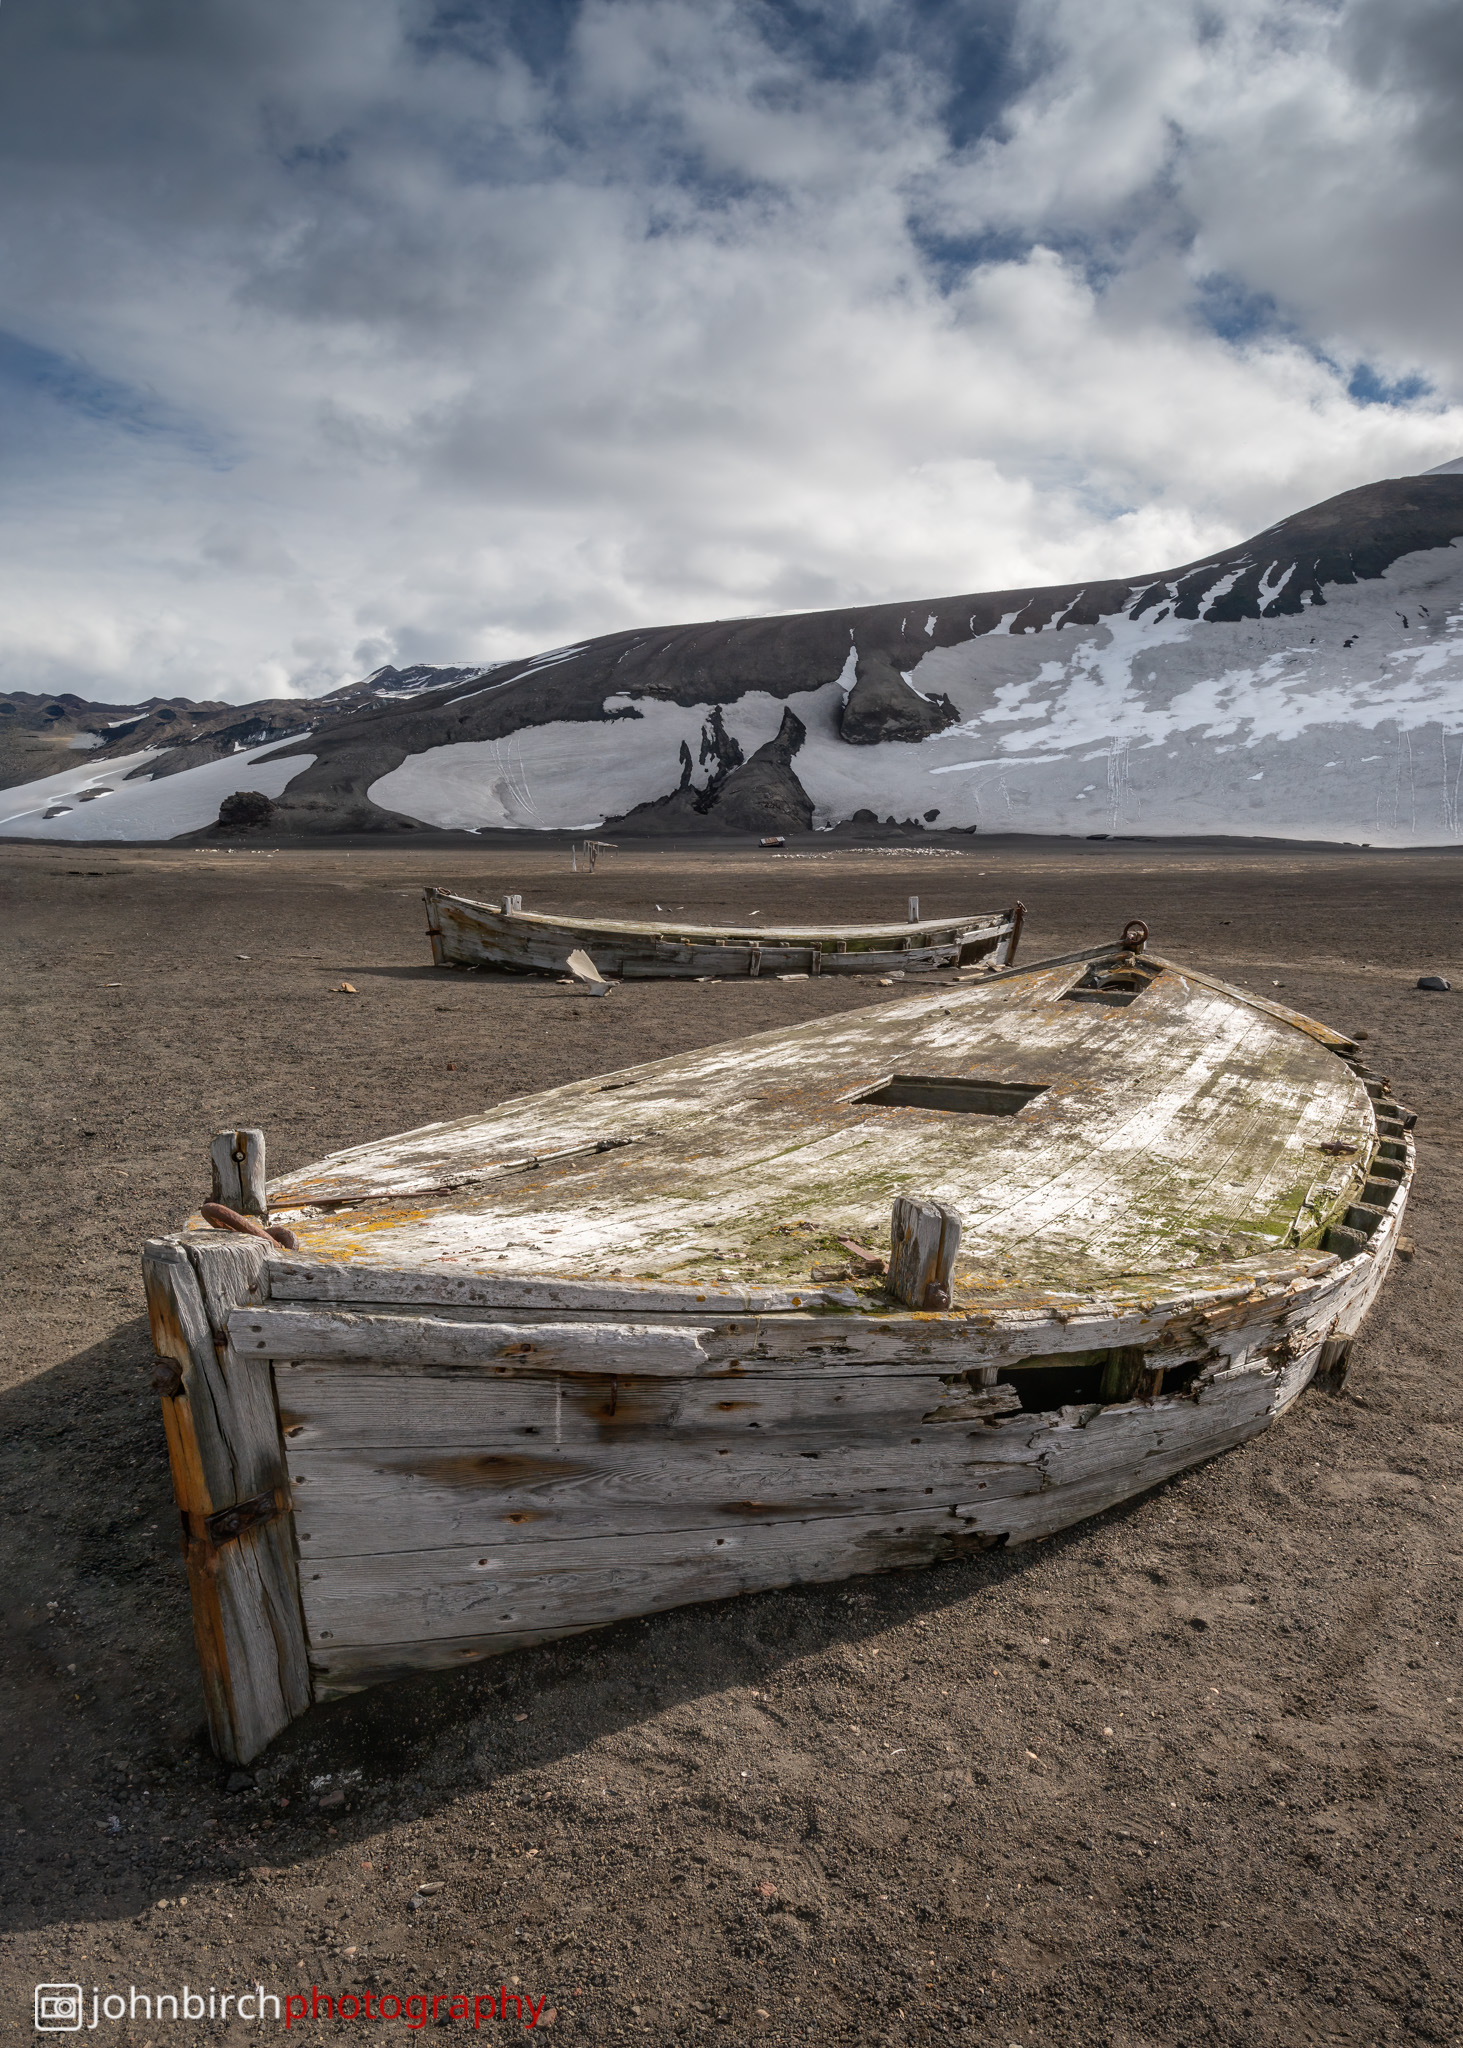 Old Whaler's Boats buried in Ash